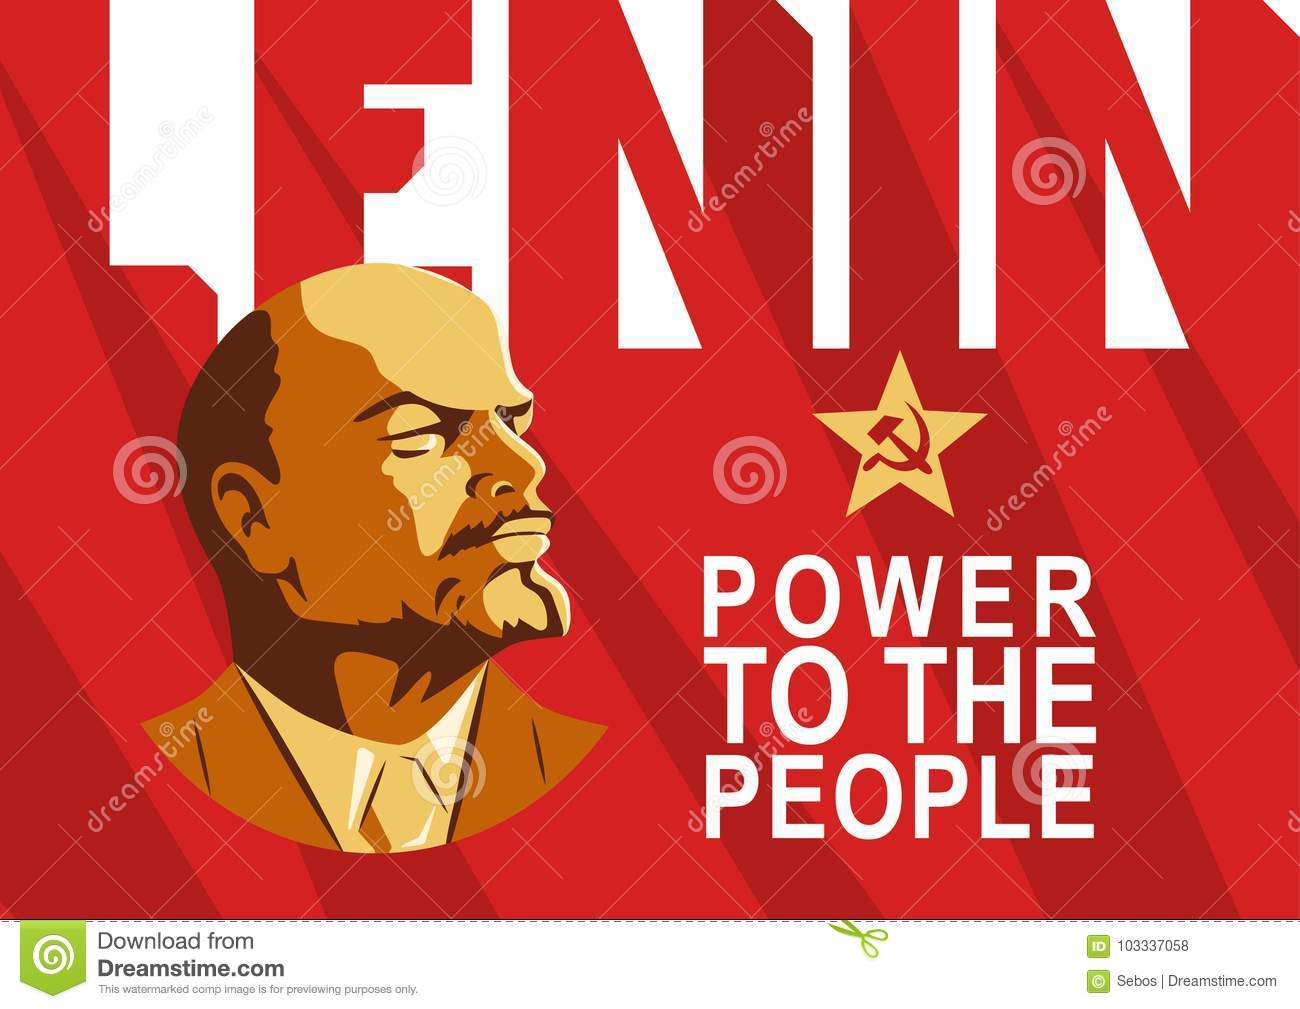 Power to the people stock illustration. Illustration of.